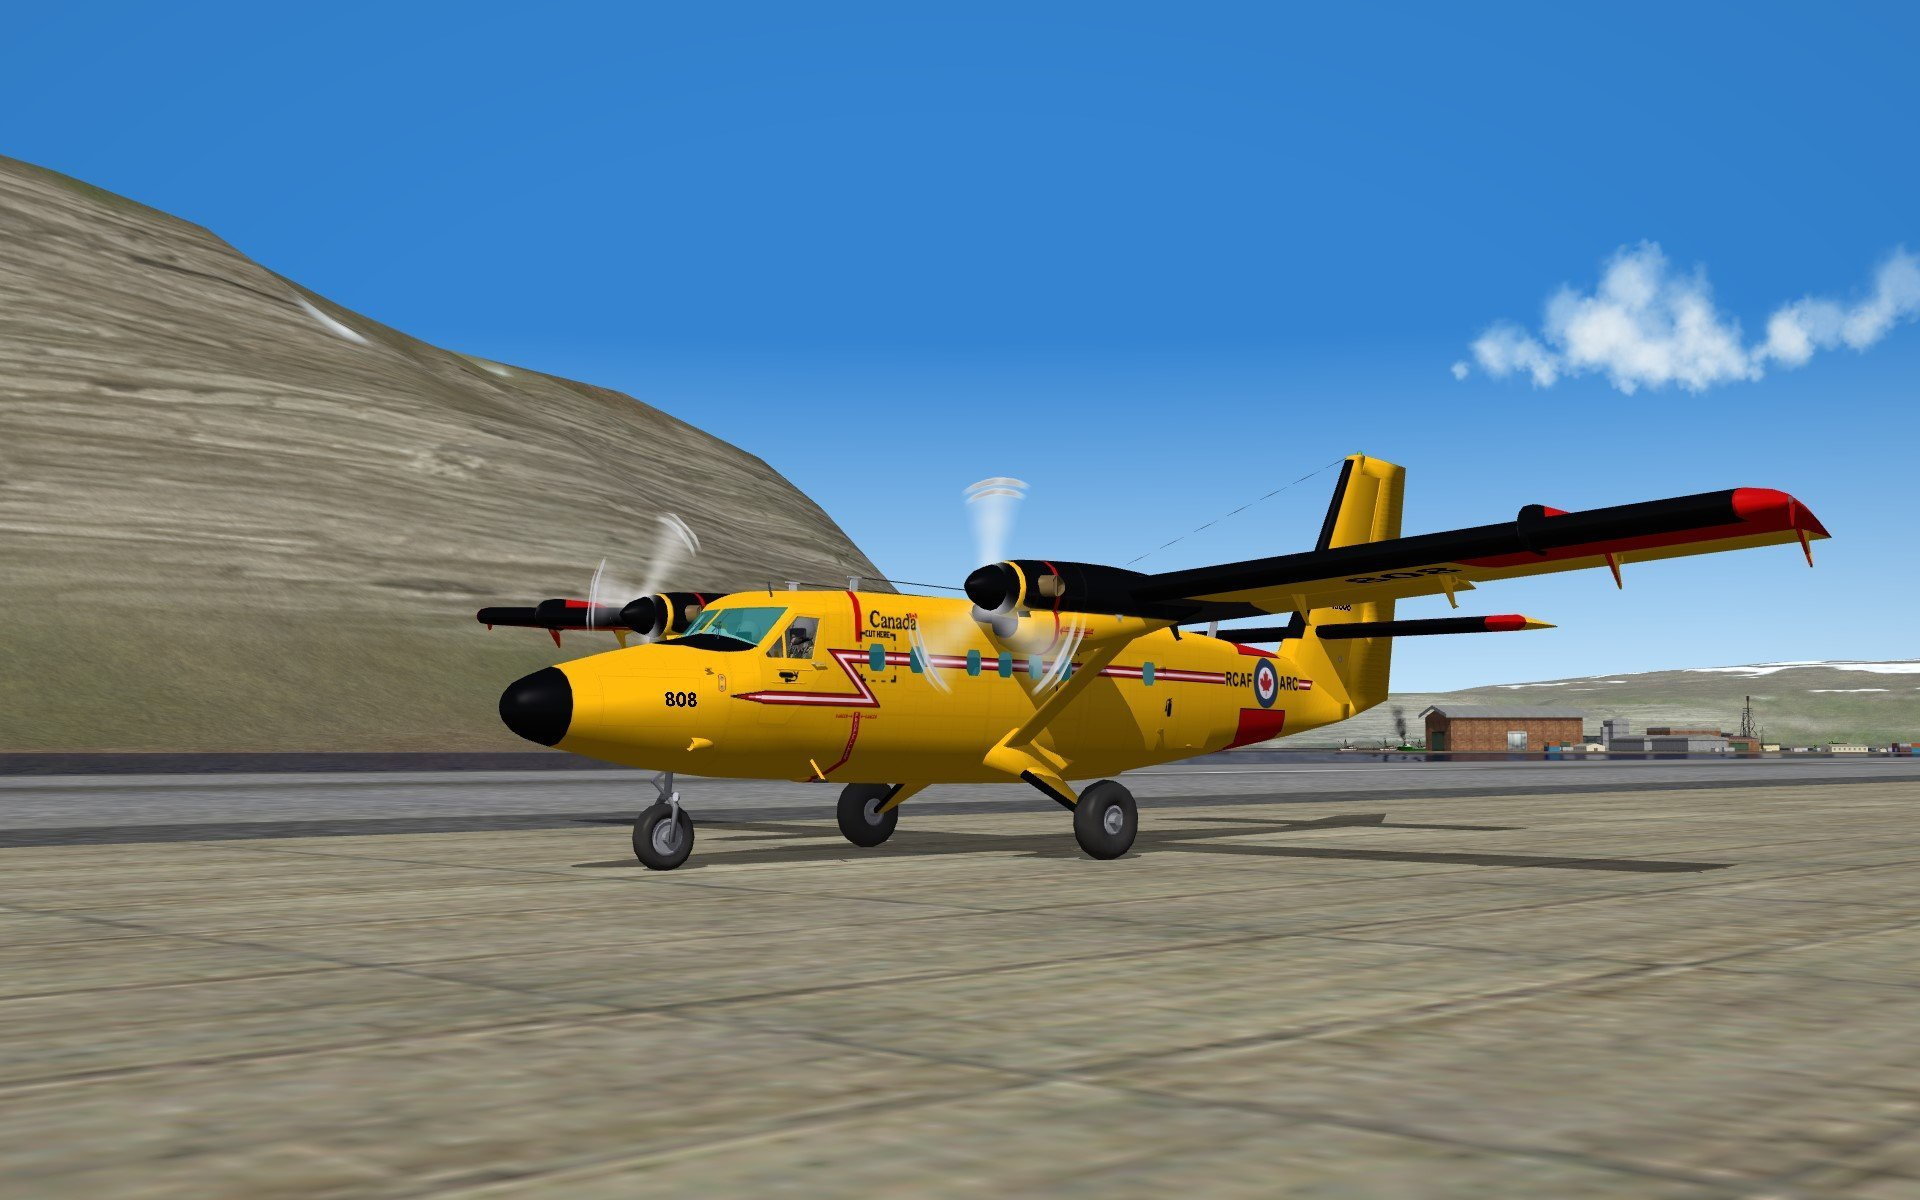 DHC-6 (CC-138) Twin Otter